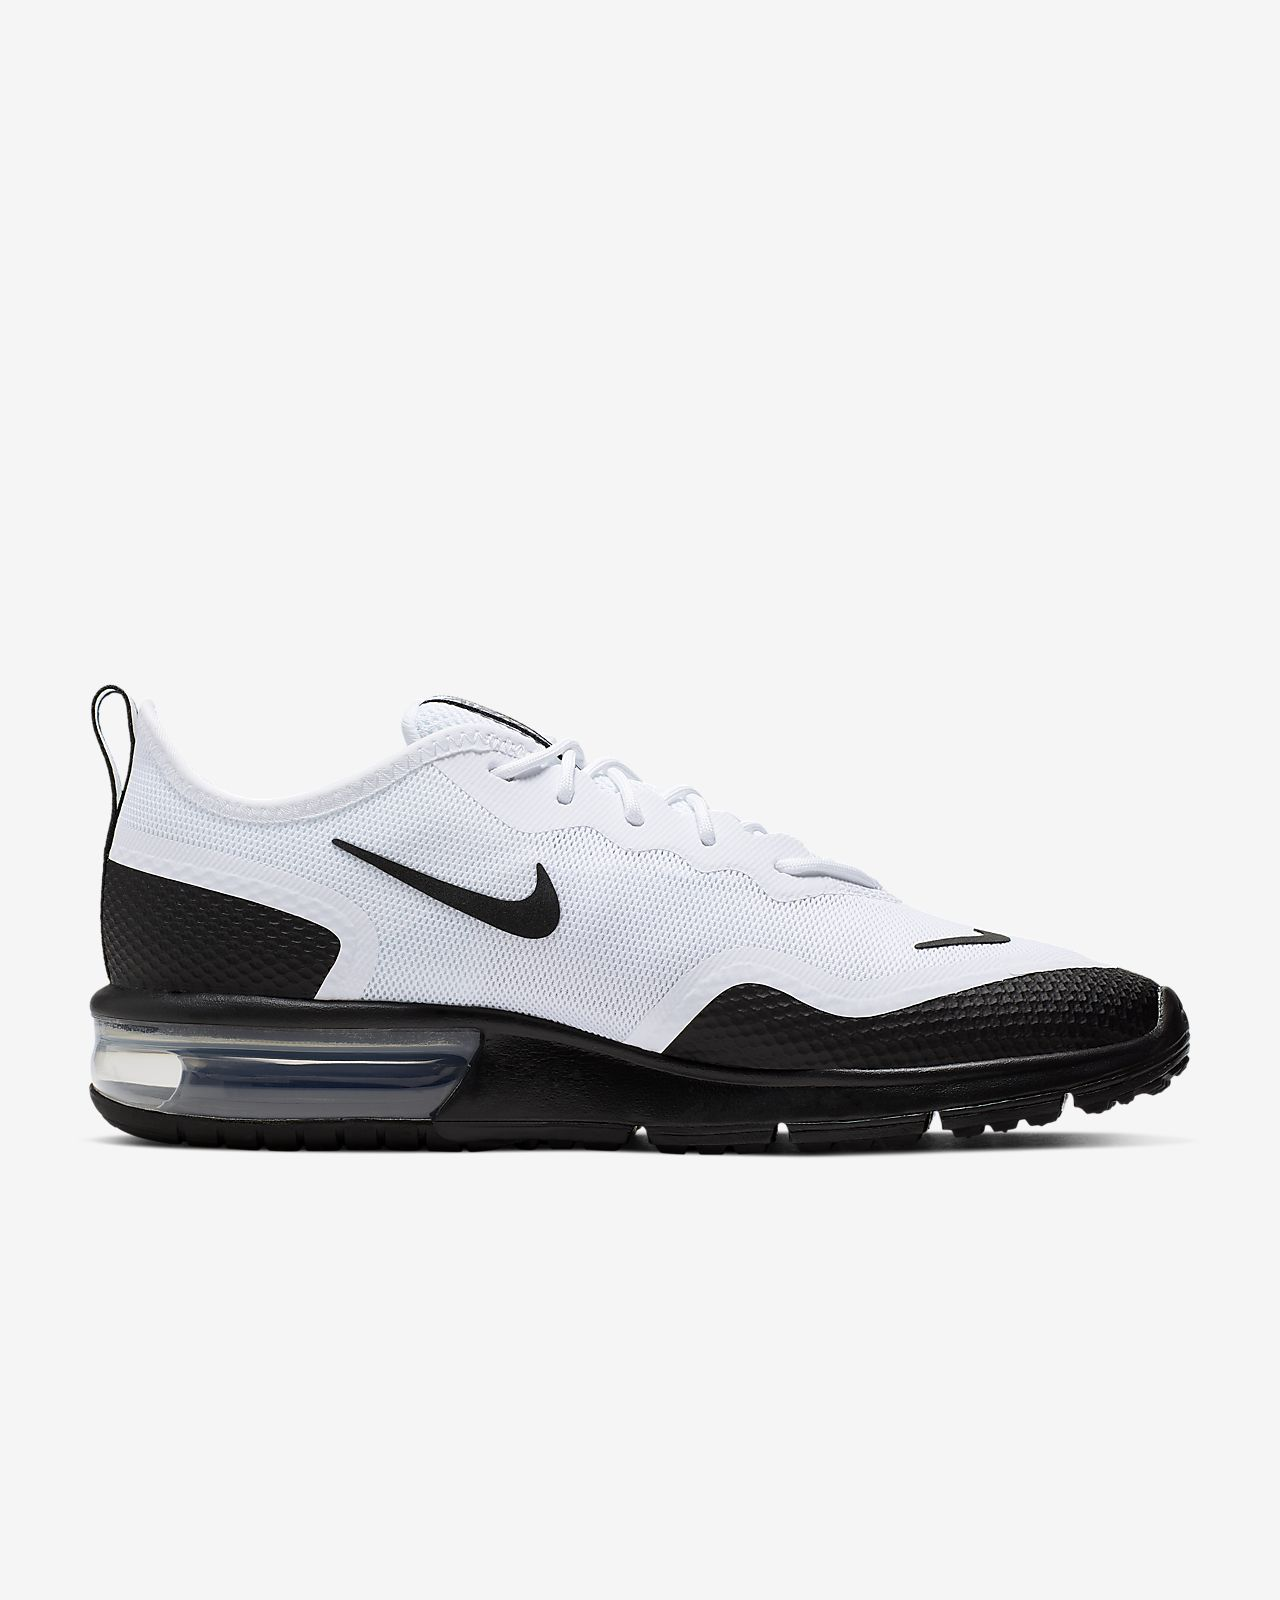 Nike Air Max Sequent 4.5 Herren Laufschuh